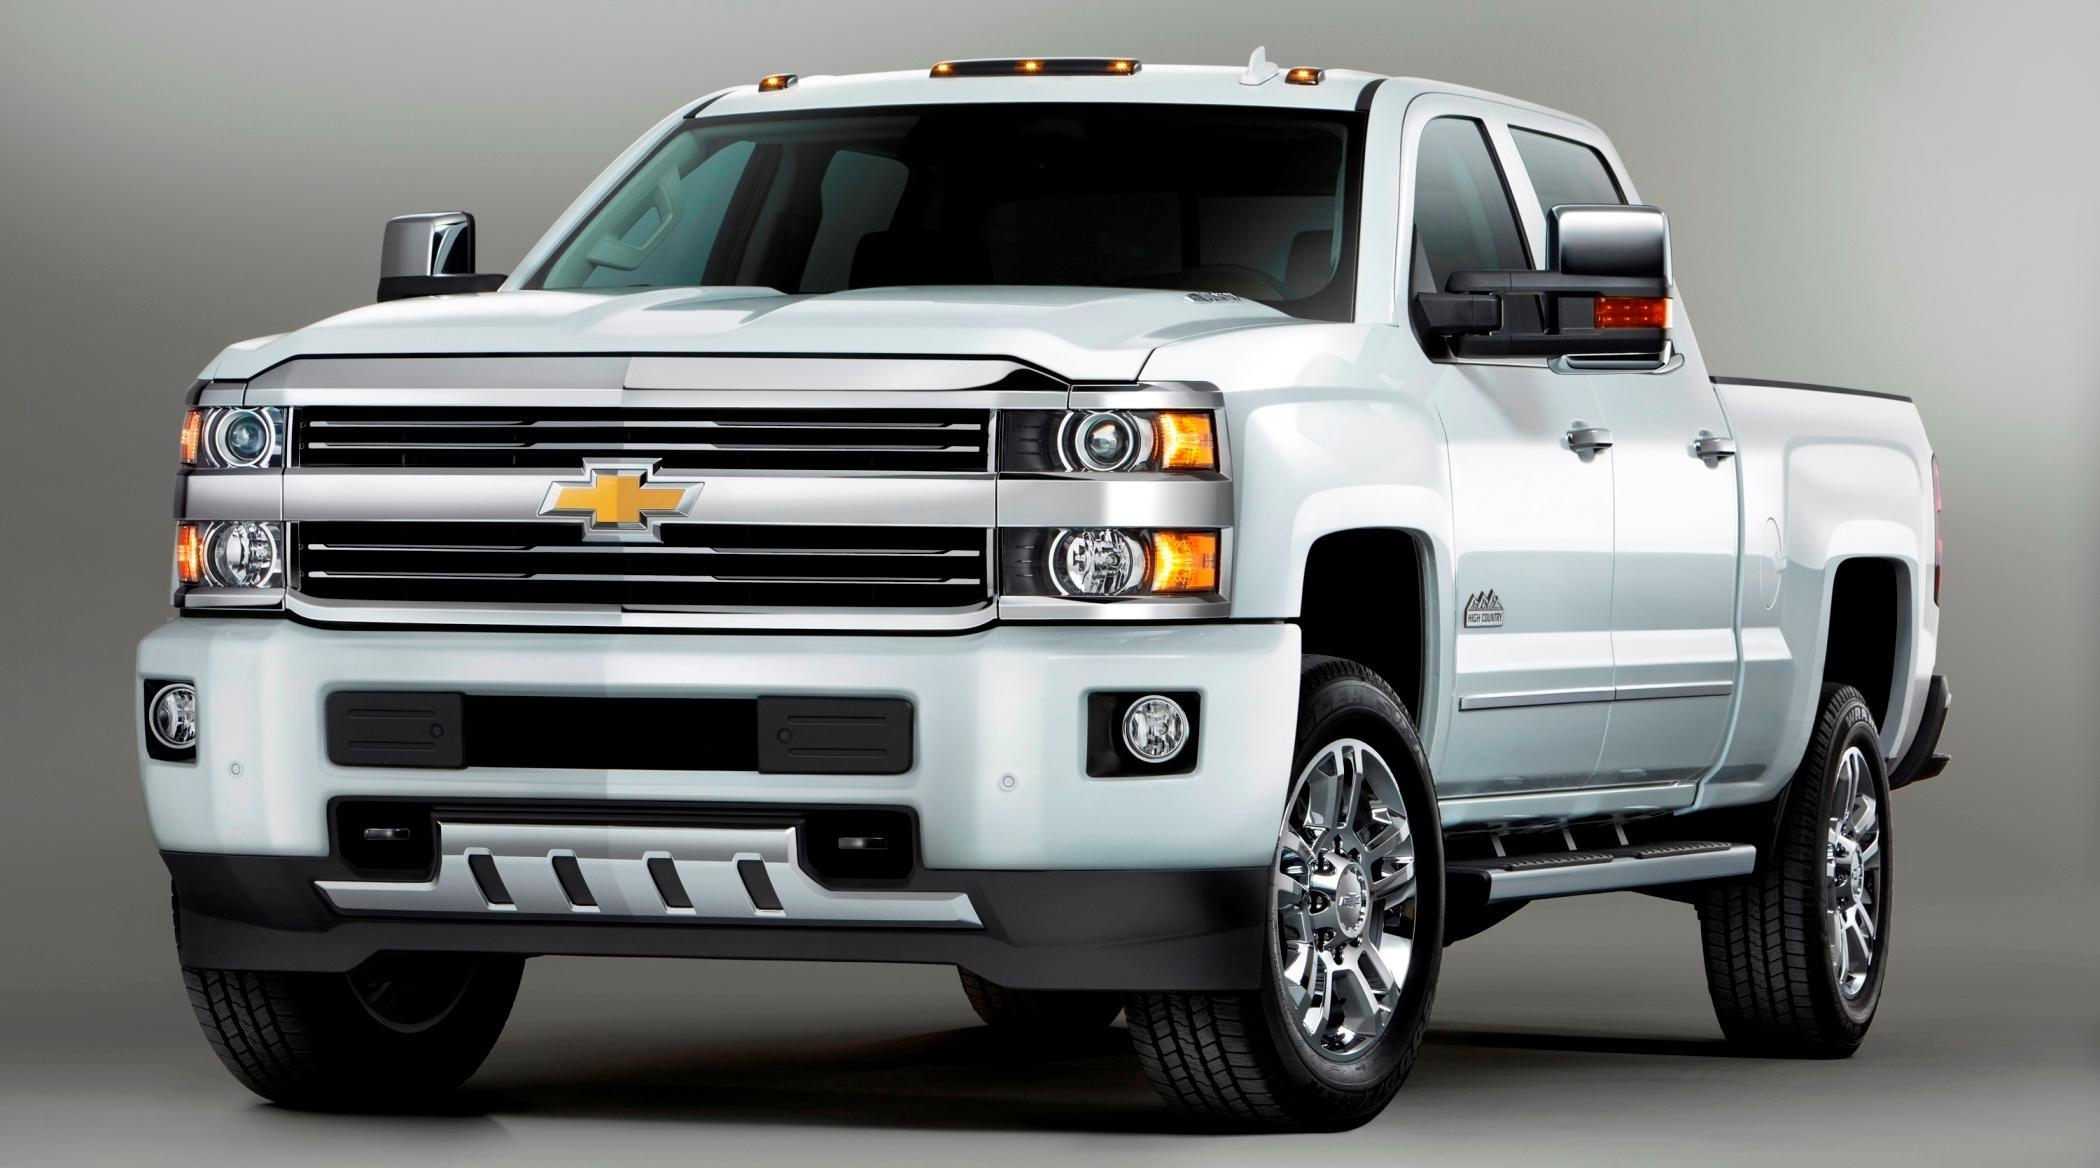 chevrolet silverado 2500hd country 3500hd edition truck superior cabin chevy 2500 nationwide arriving dealers tops range hd trucks pickup buyers